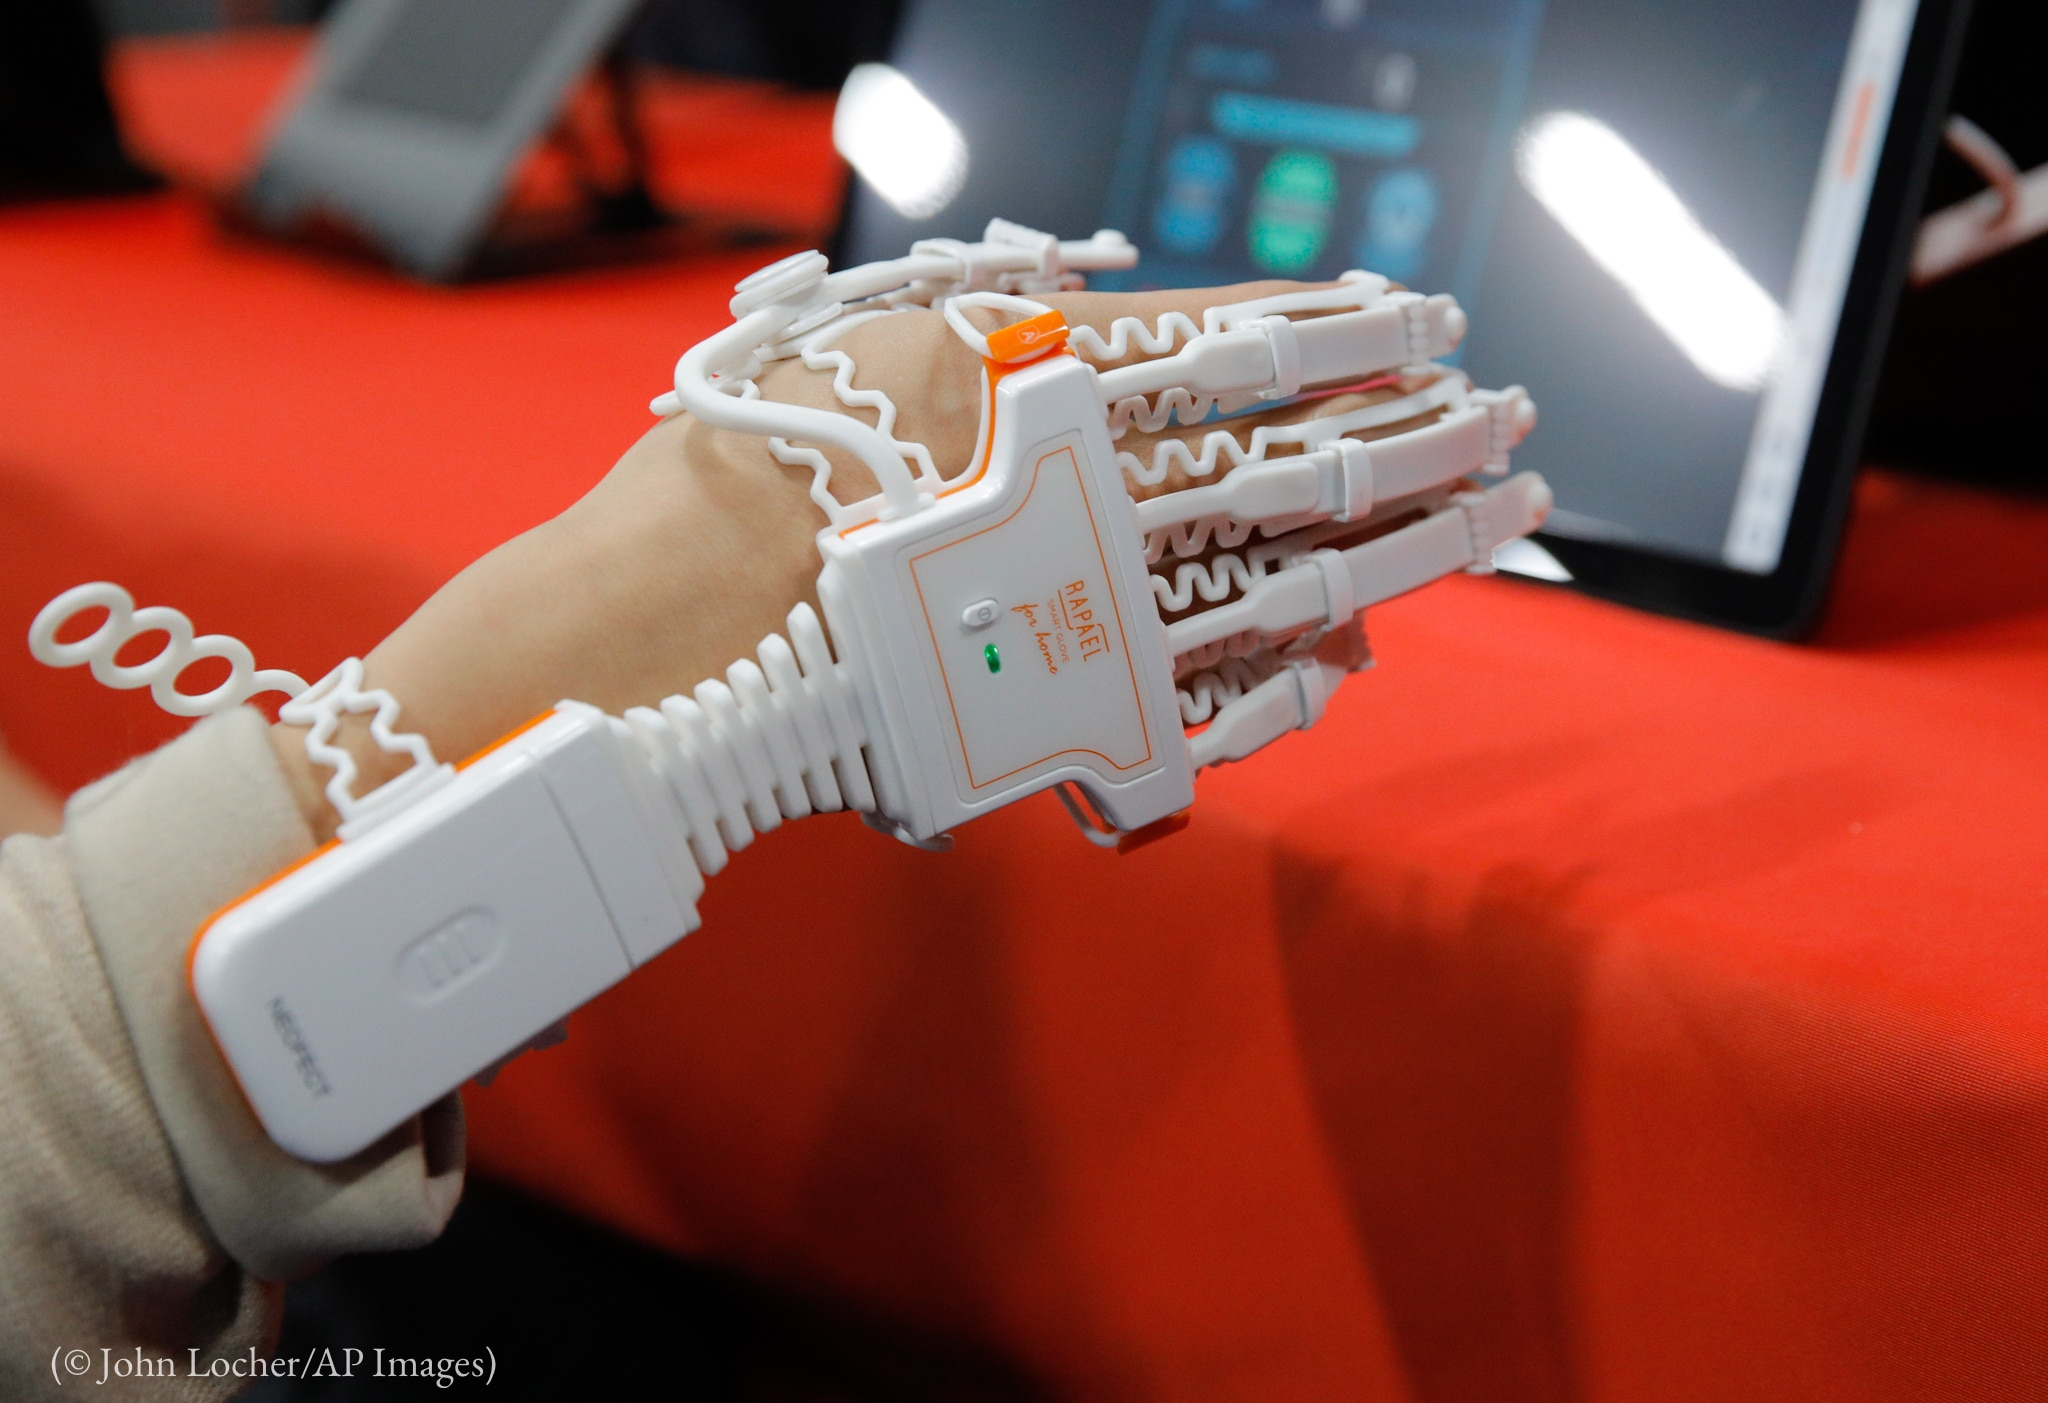 Hand with technology covering it (© John Locher/AP Images)